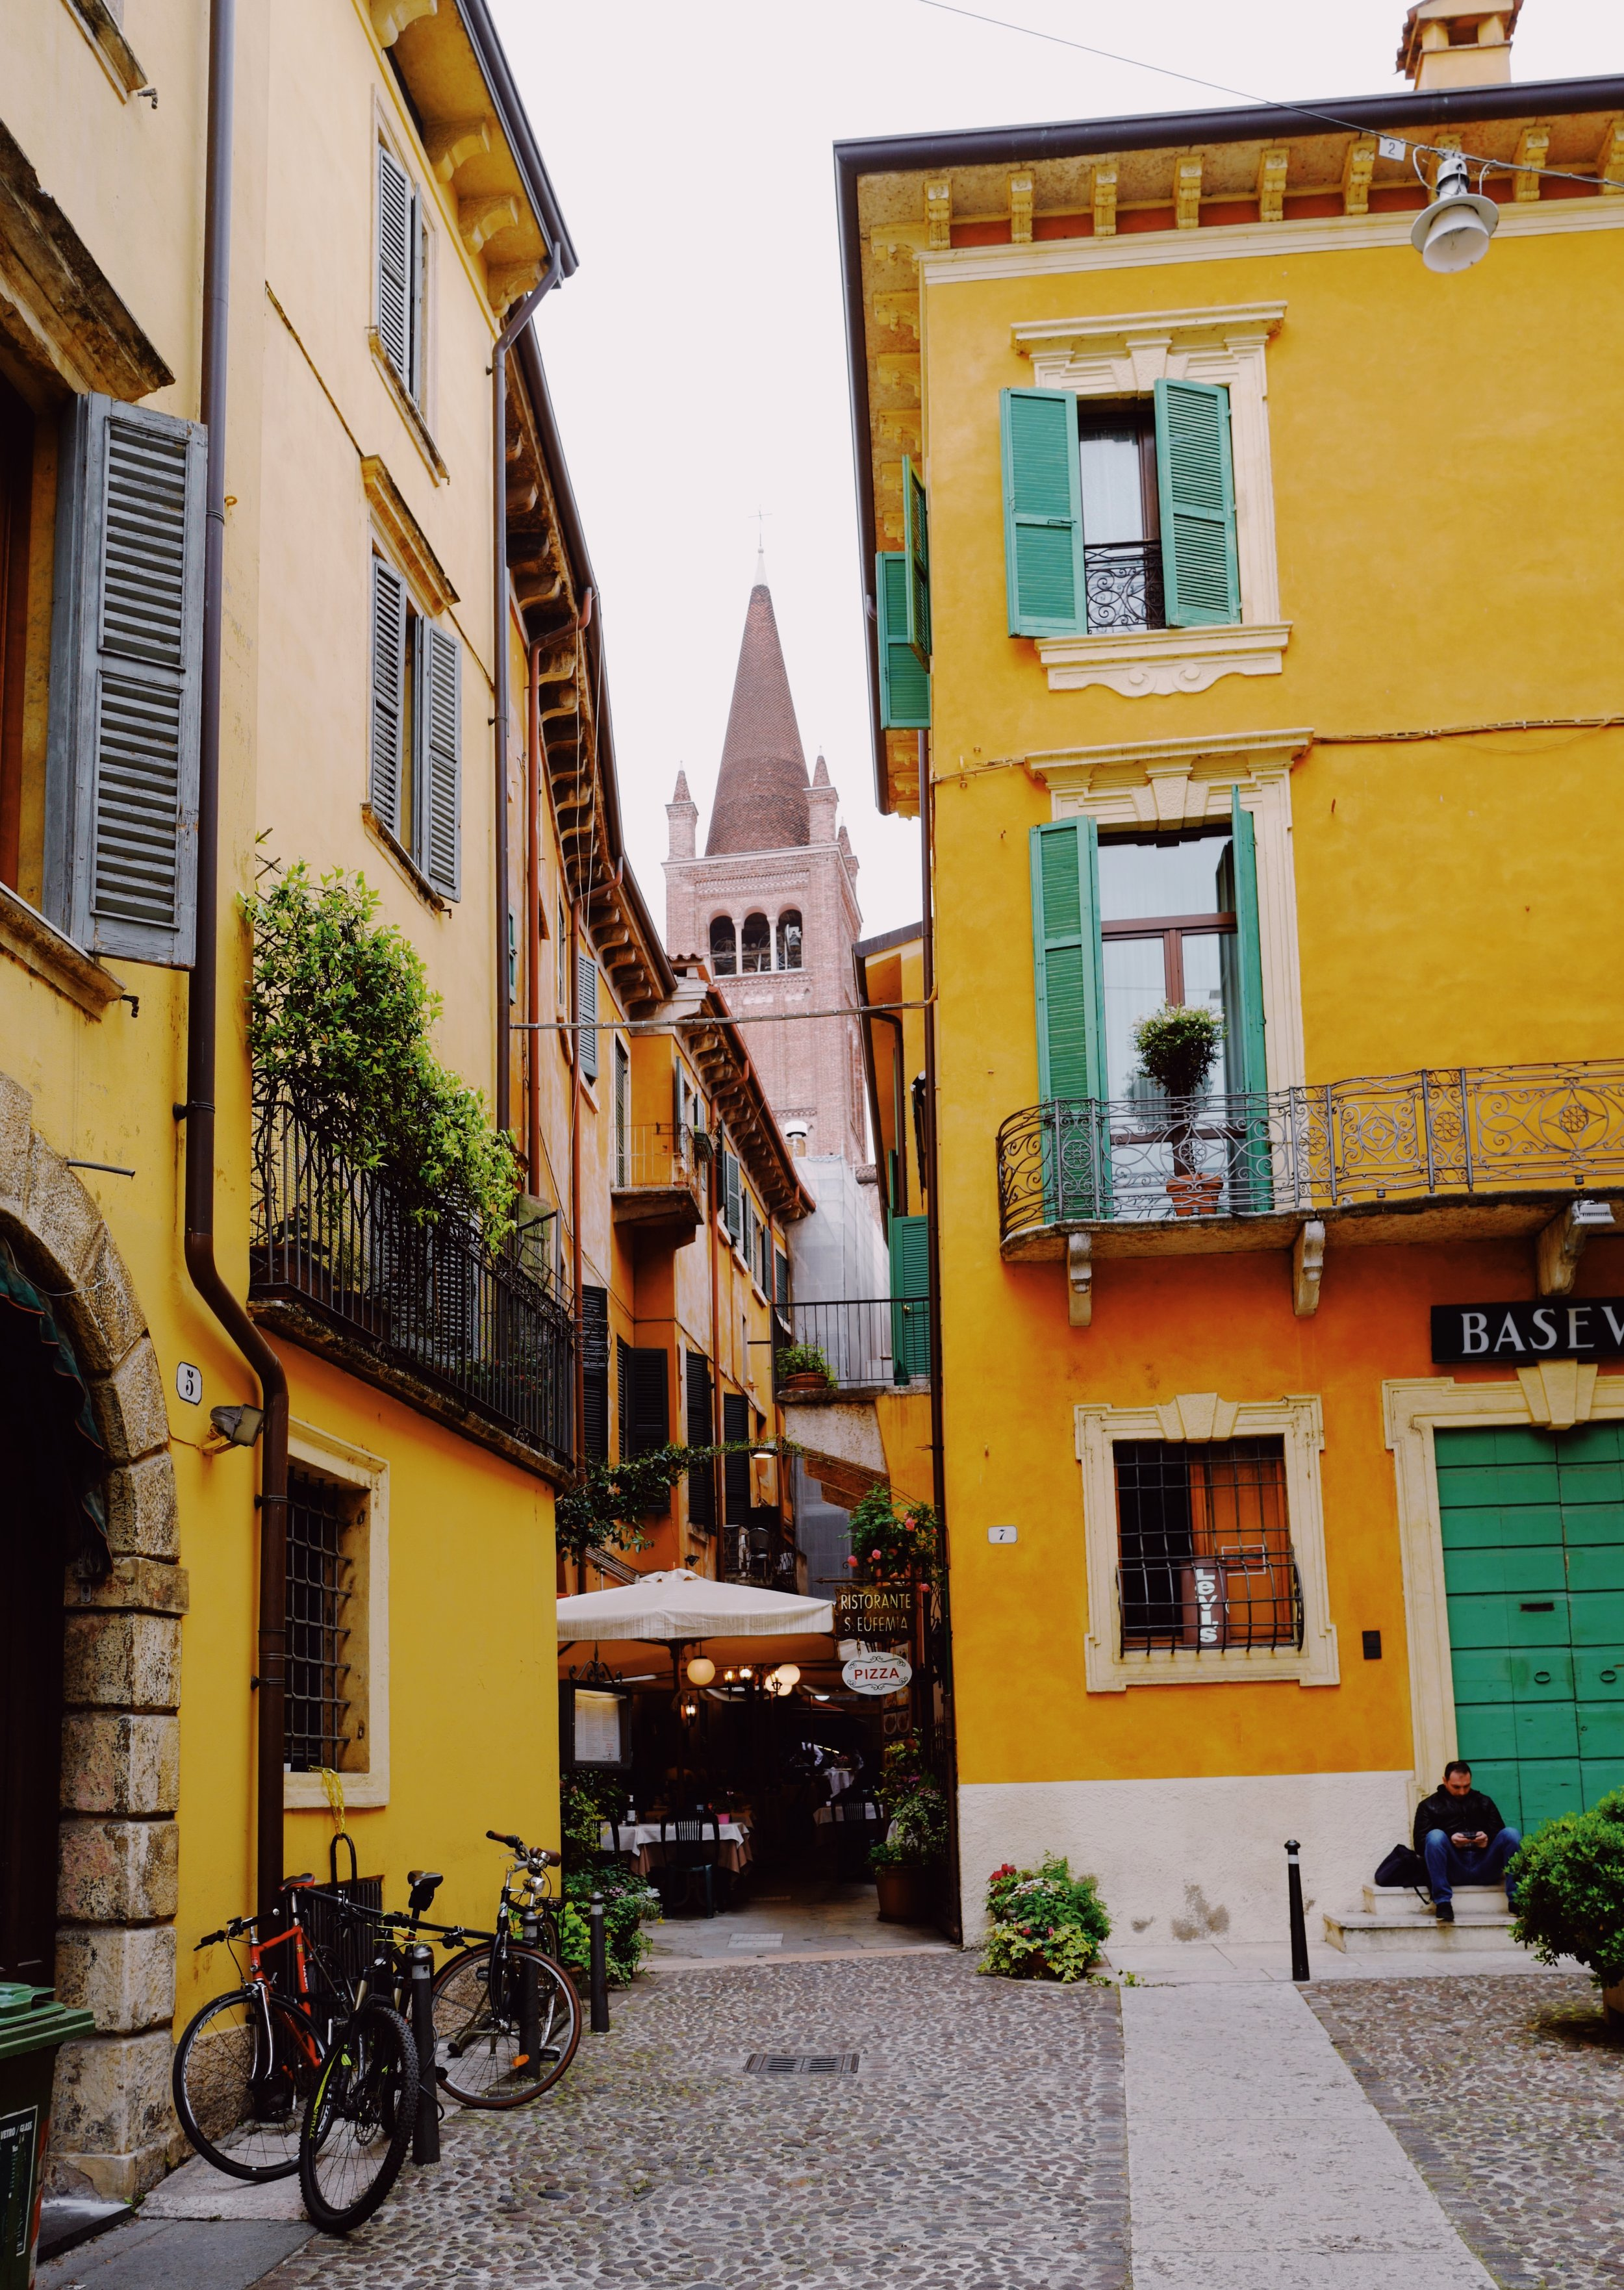 One of the beautiful streets in Verona